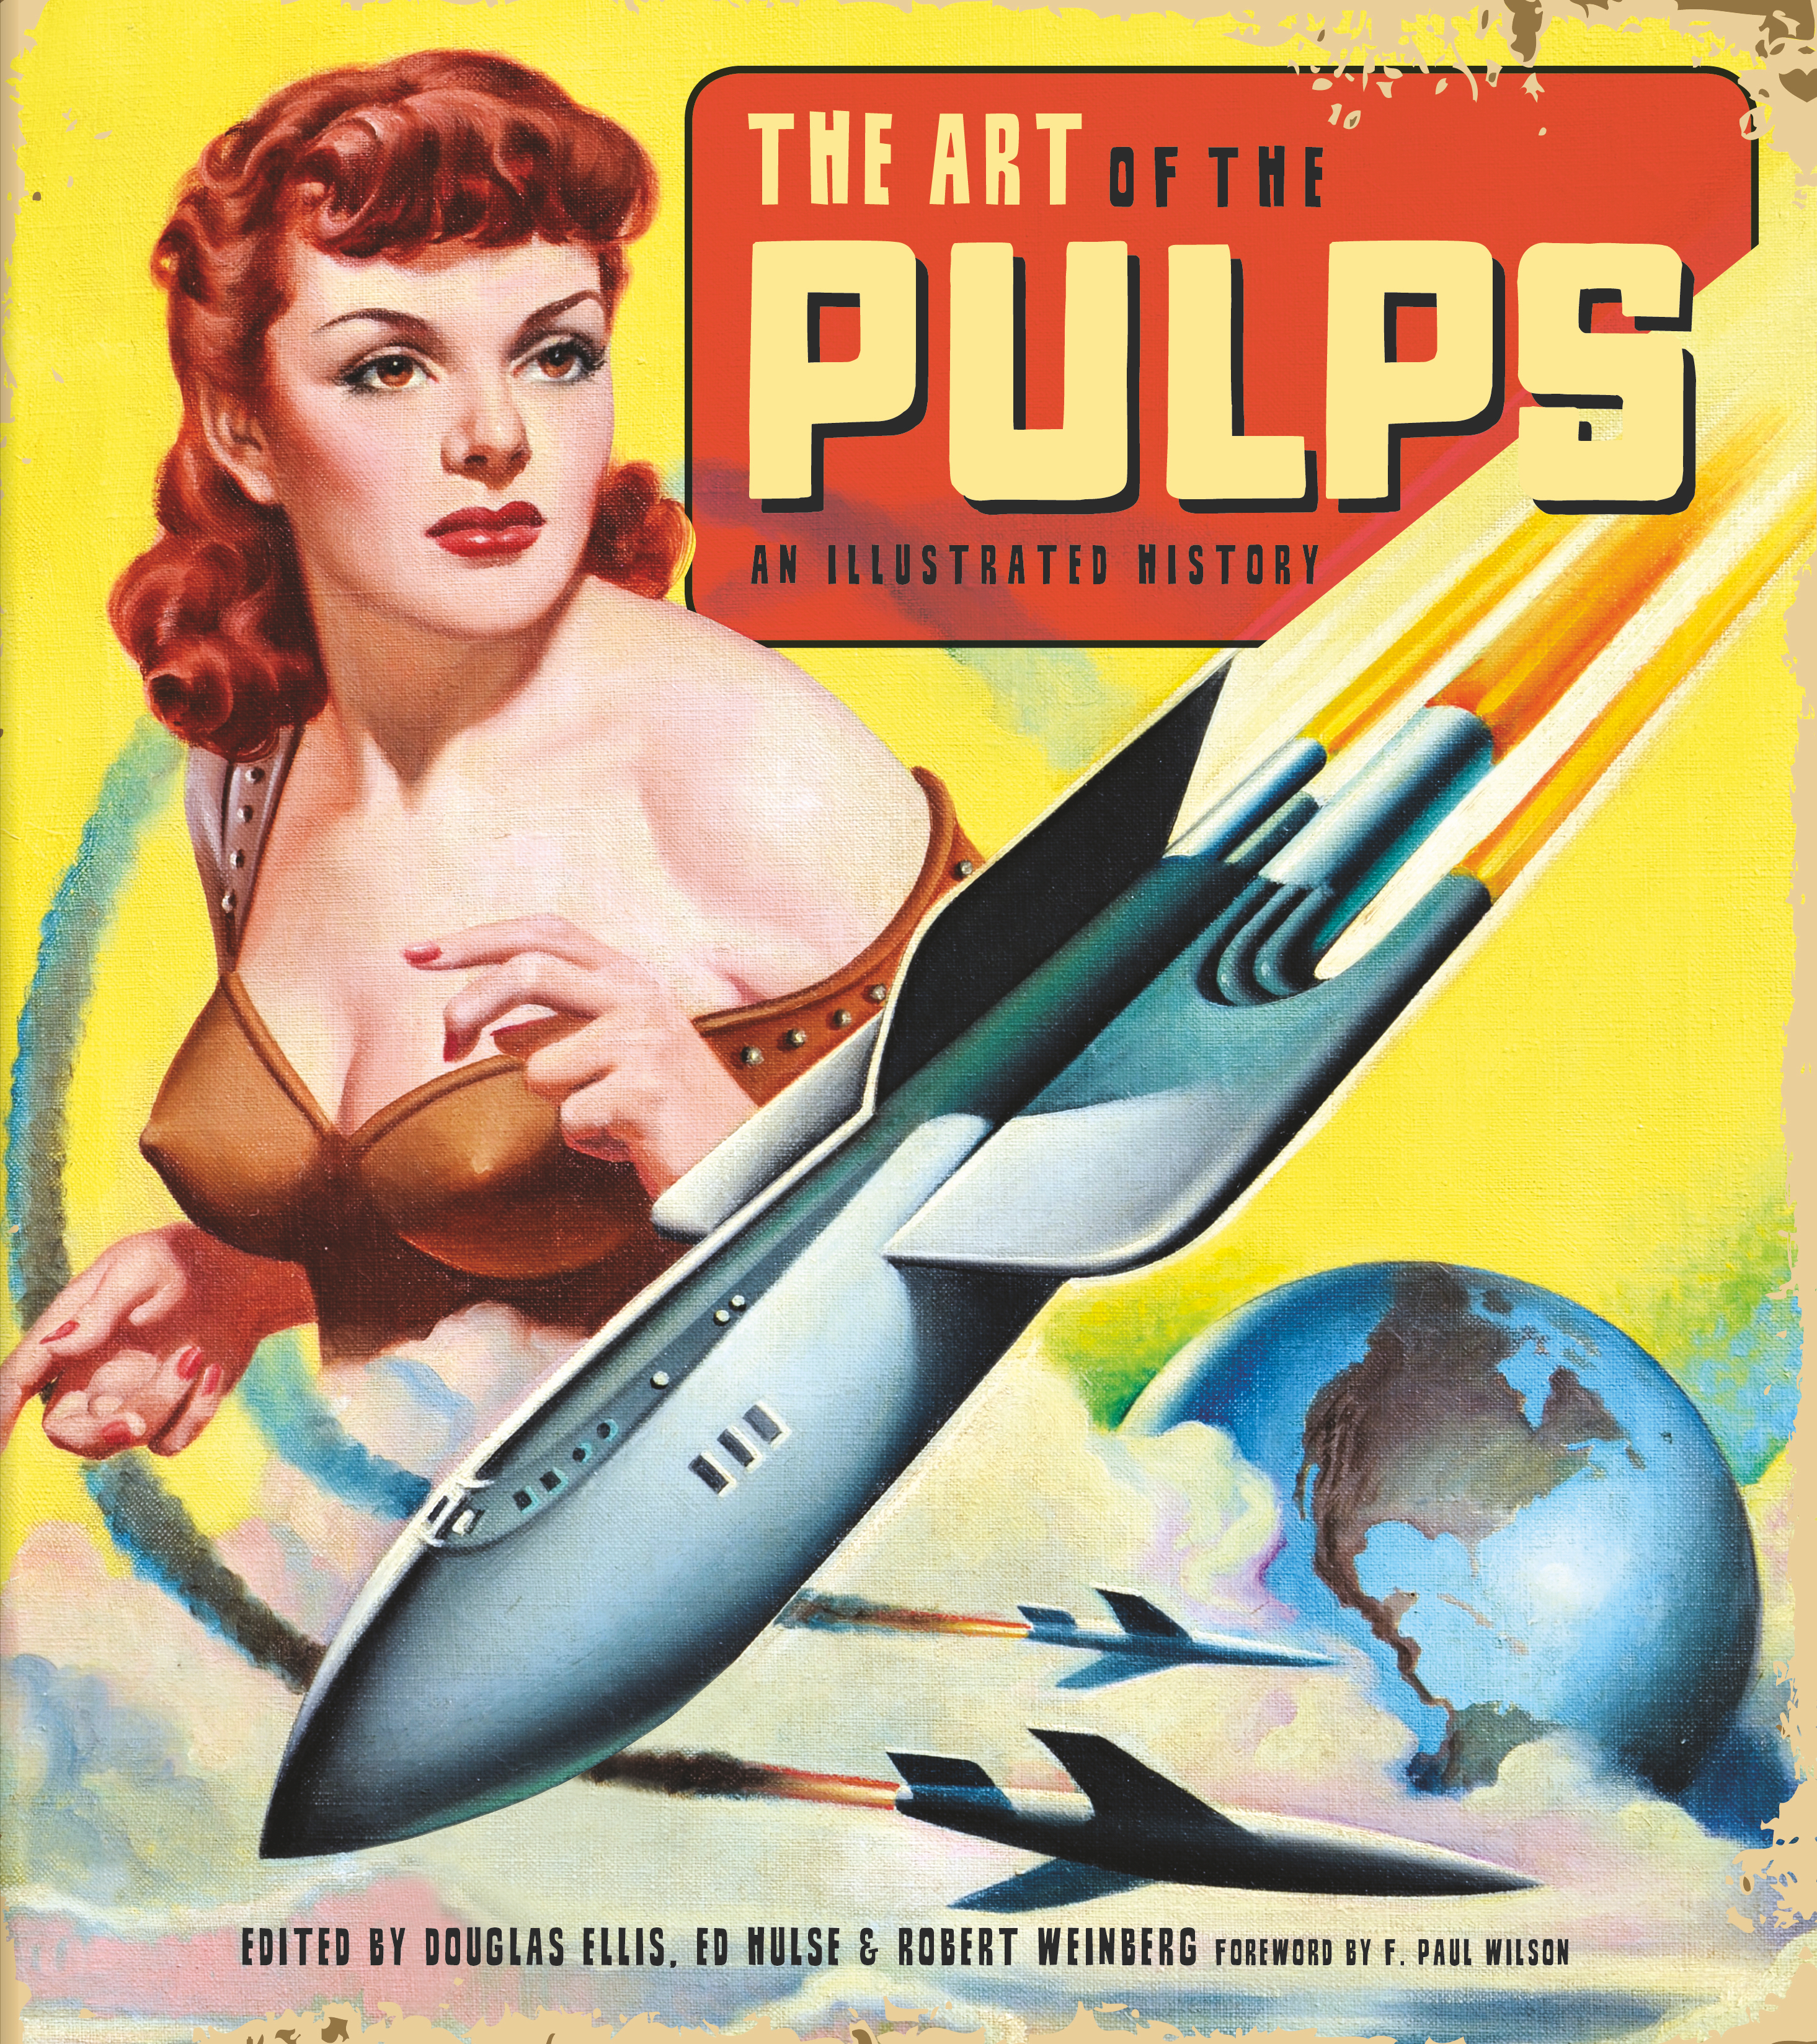 ART OF THE PULPS AN ILLUSTRATED HISTORY HC